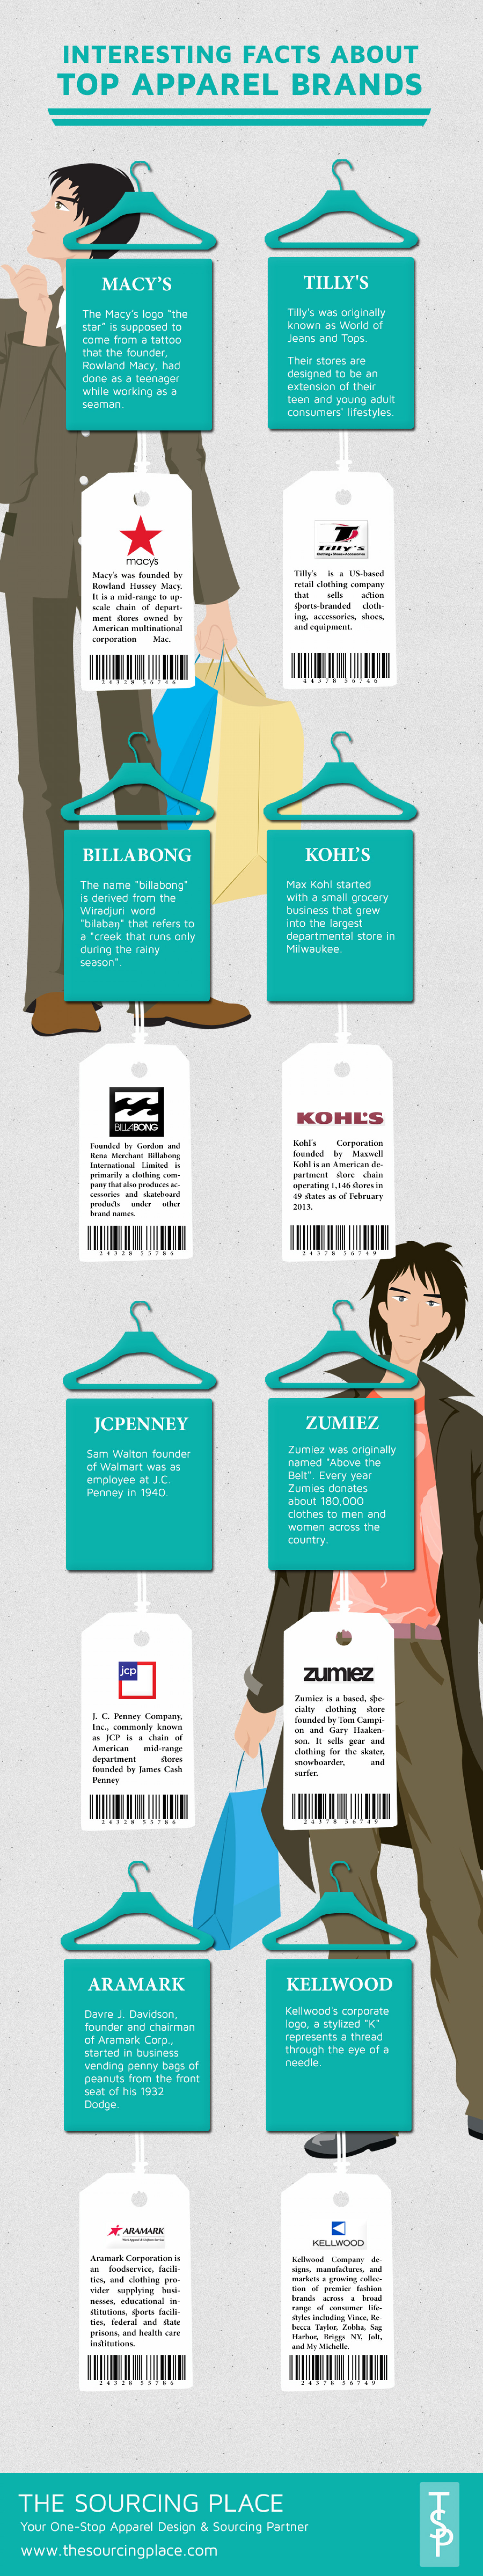 Top Apparel Brands Infographic